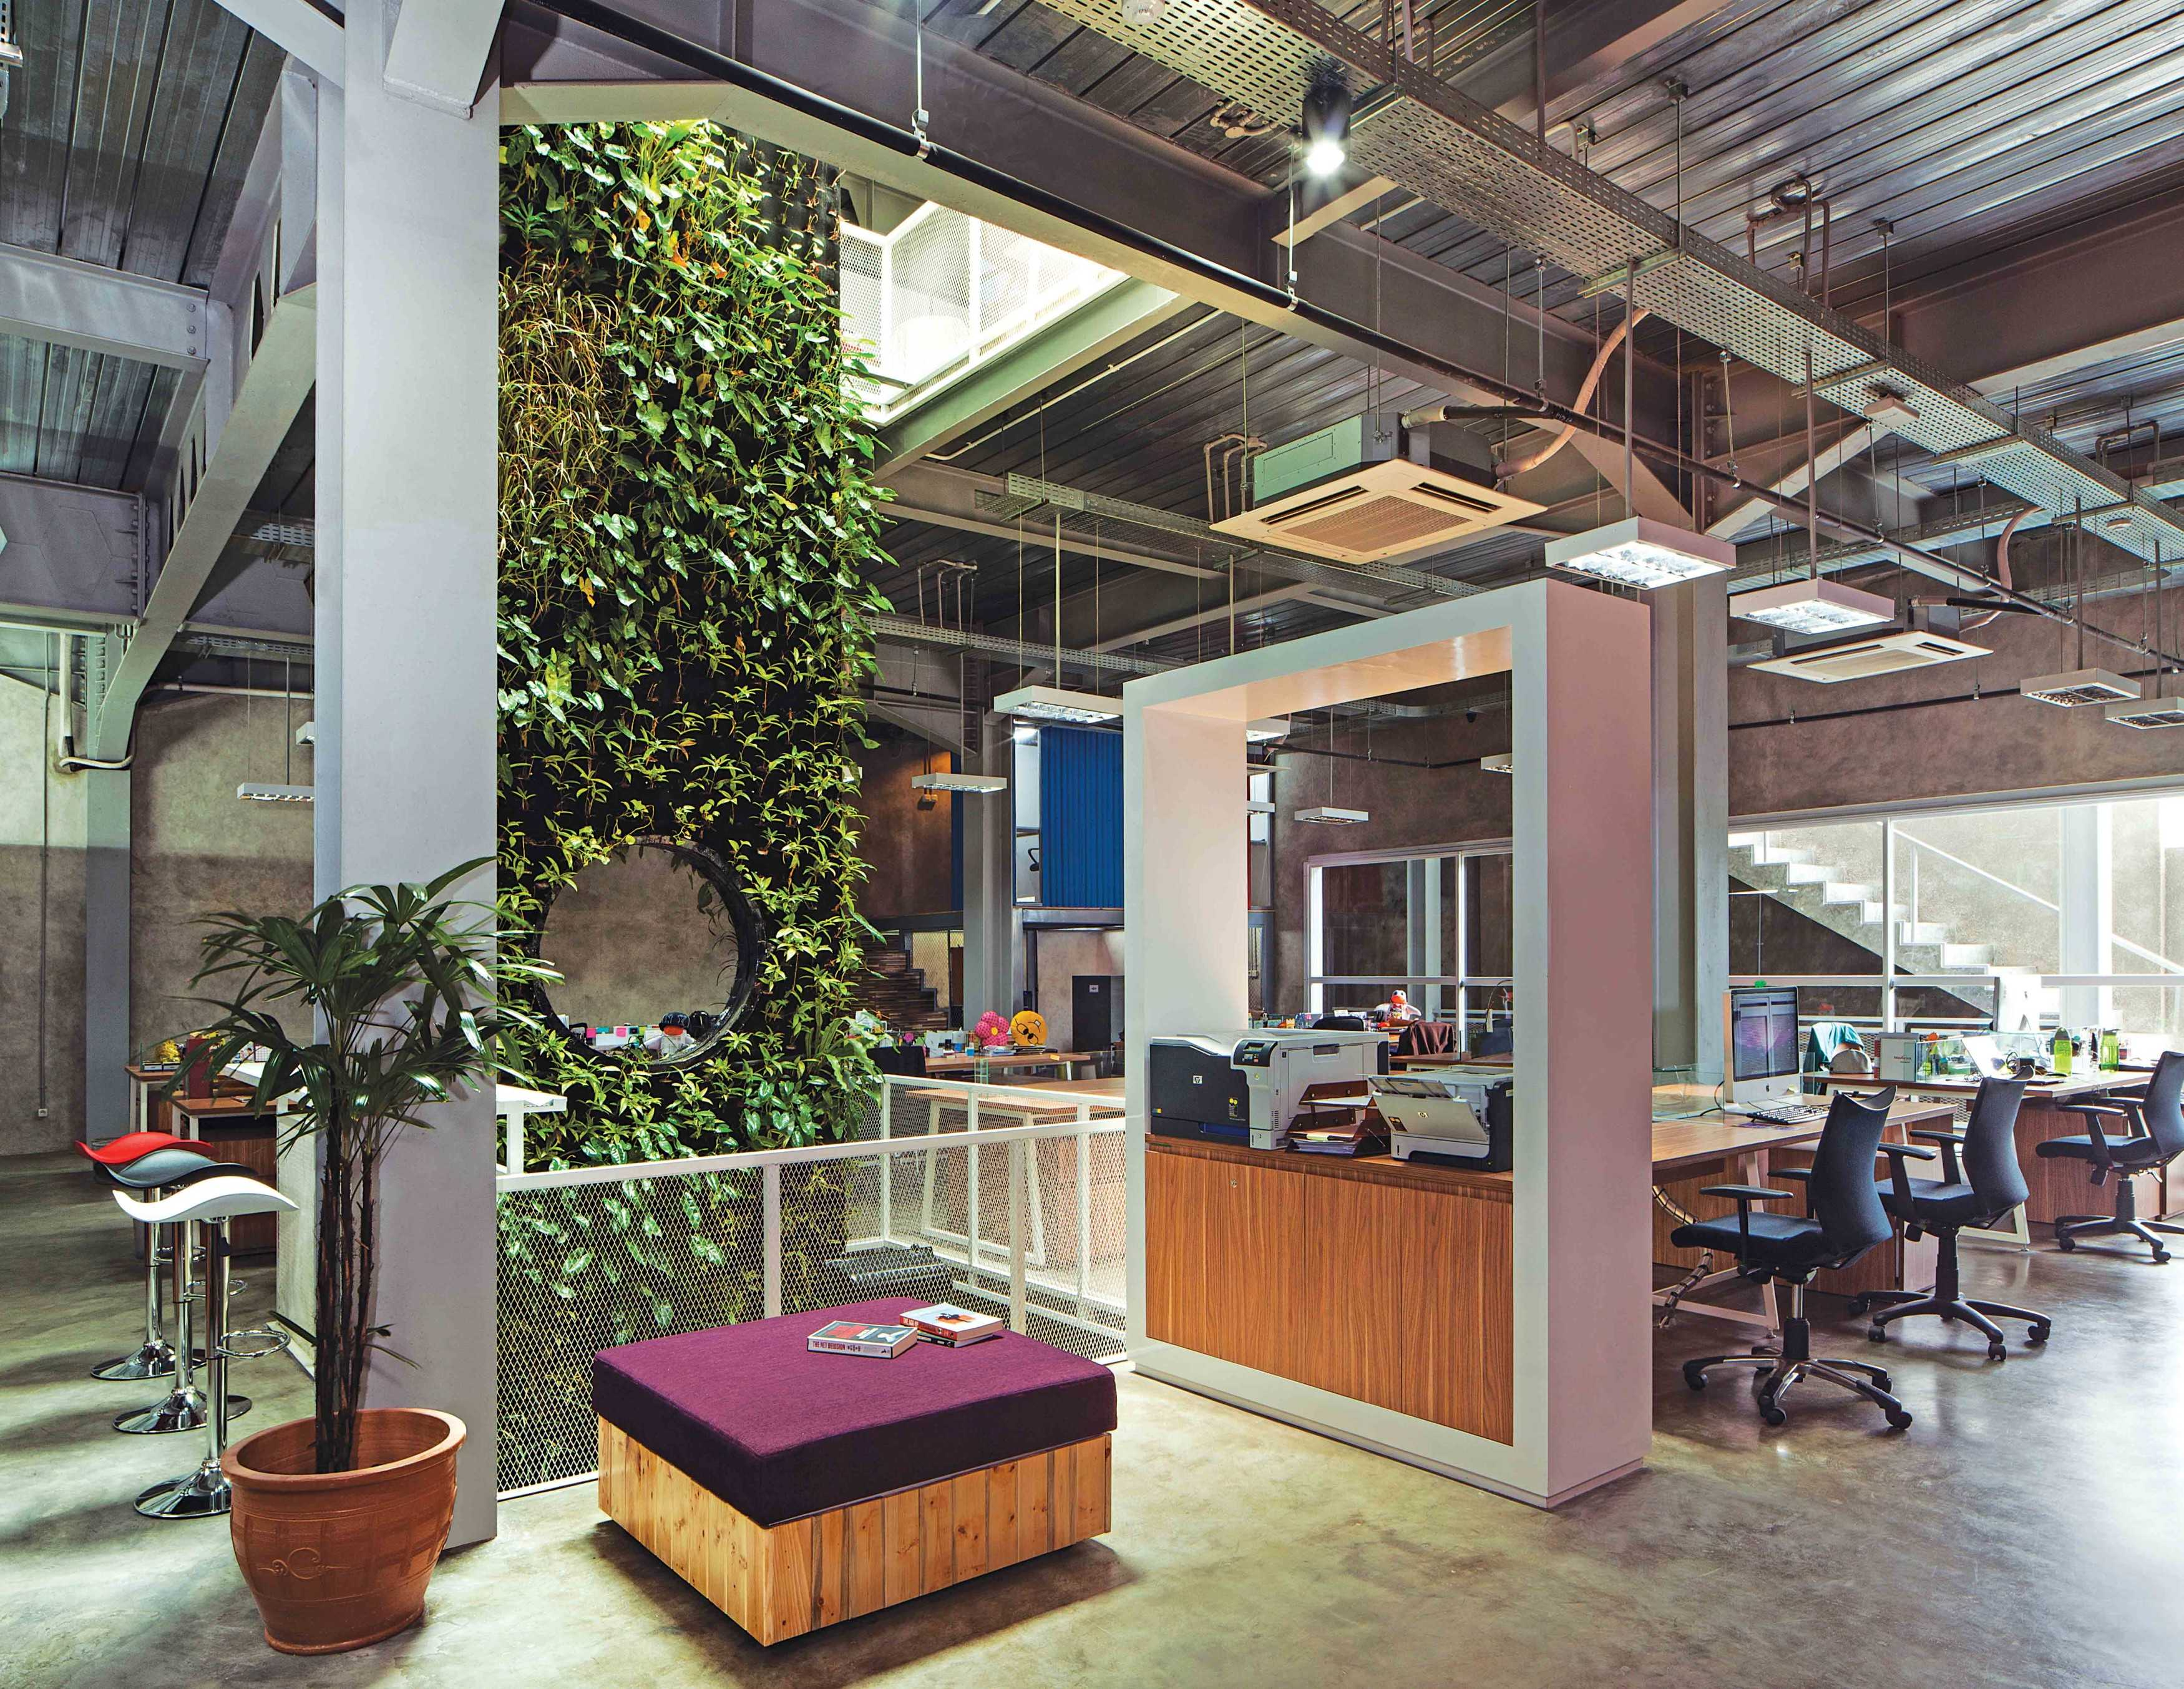 Jerry M. Febrino Maverick Office Kby. Baru, Kota Jakarta Selatan, Daerah Khusus Ibukota Jakarta, Indonesia Jakarta, Indonesia Reading Area Industrial <P>Wide Open Staff Area Without Partition, Create Fresh Looking Space With Green Wall Inside</p> 9533